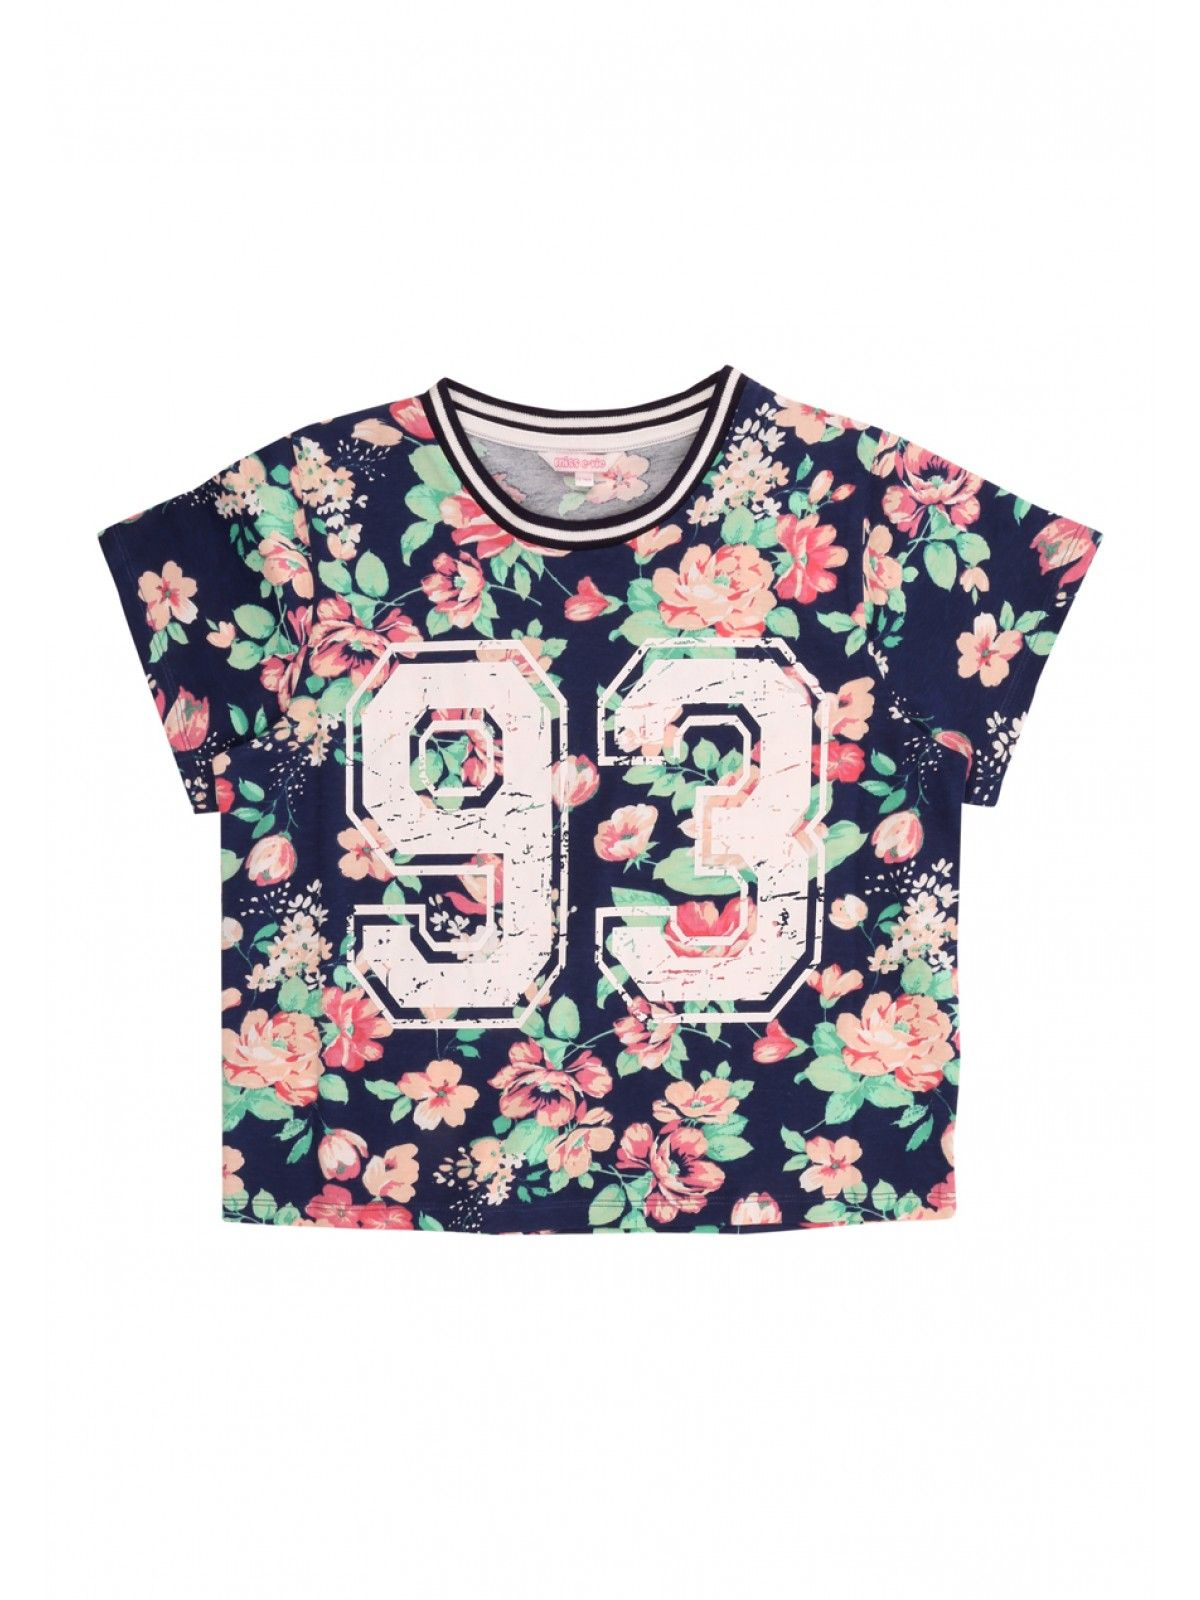 0371809fc9b124 pretty croptop outfits for a preteen - Google Search